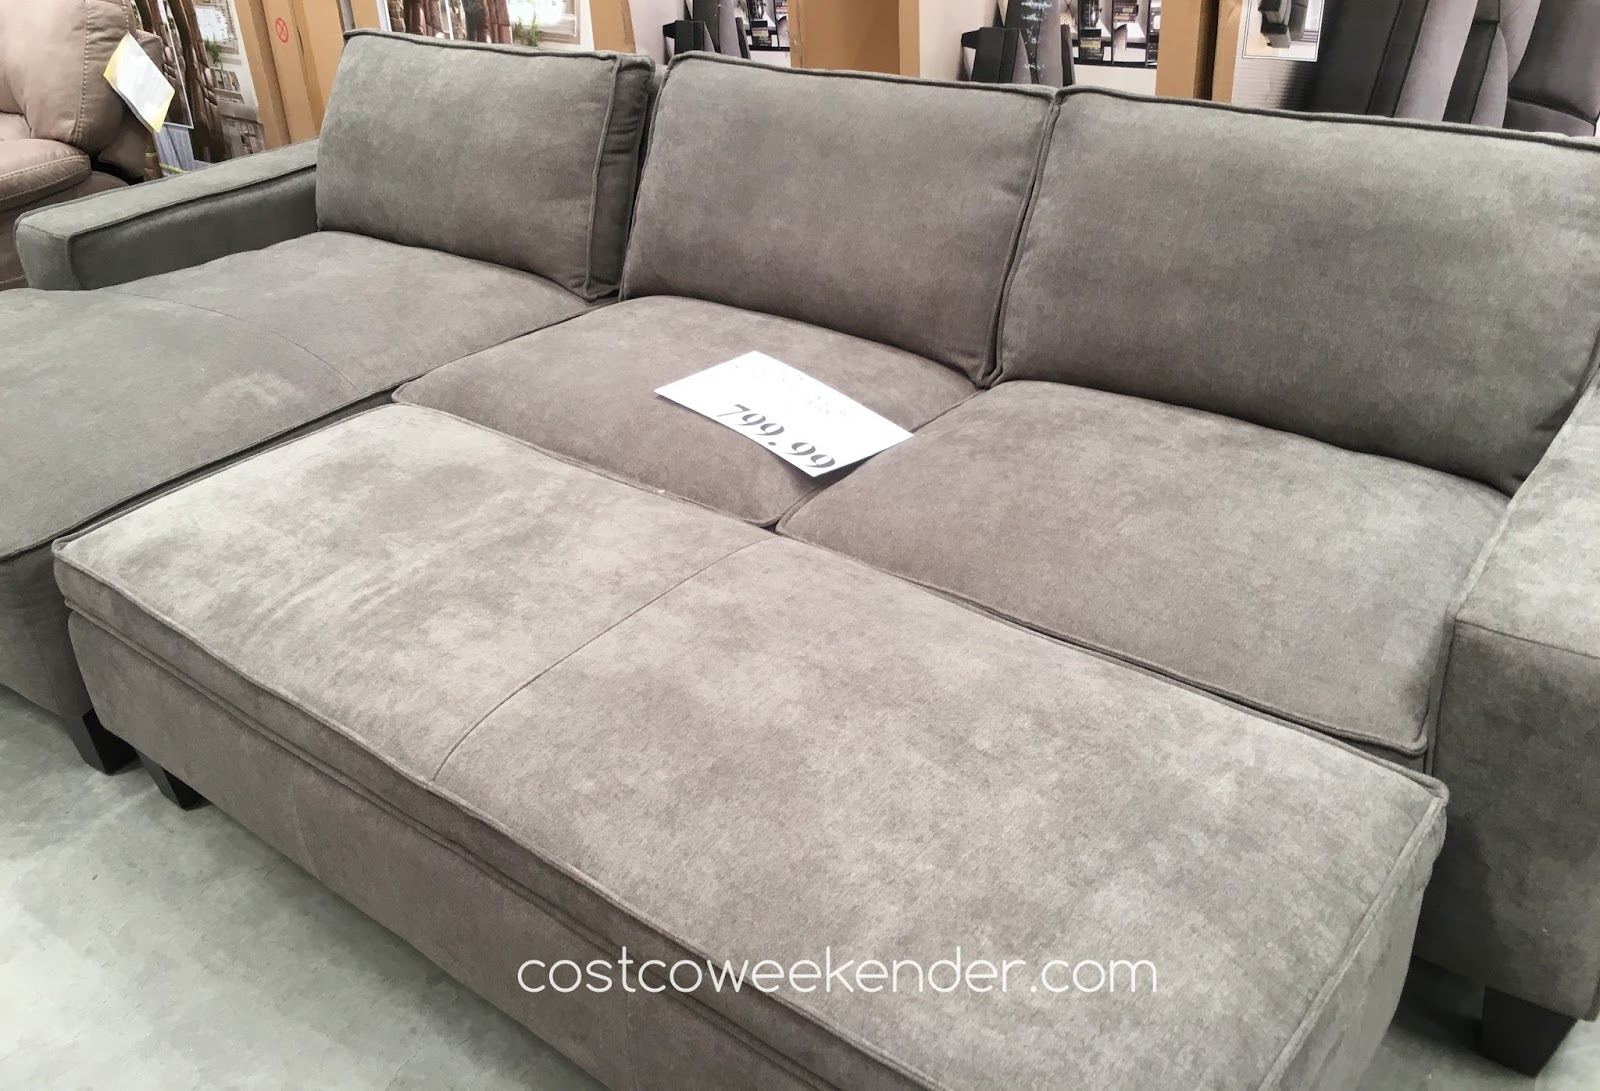 Costco Euro Style Sleeper Sofa Cheap Black Leather Sectional Sofas Chaise With Storage Ottoman Weekender